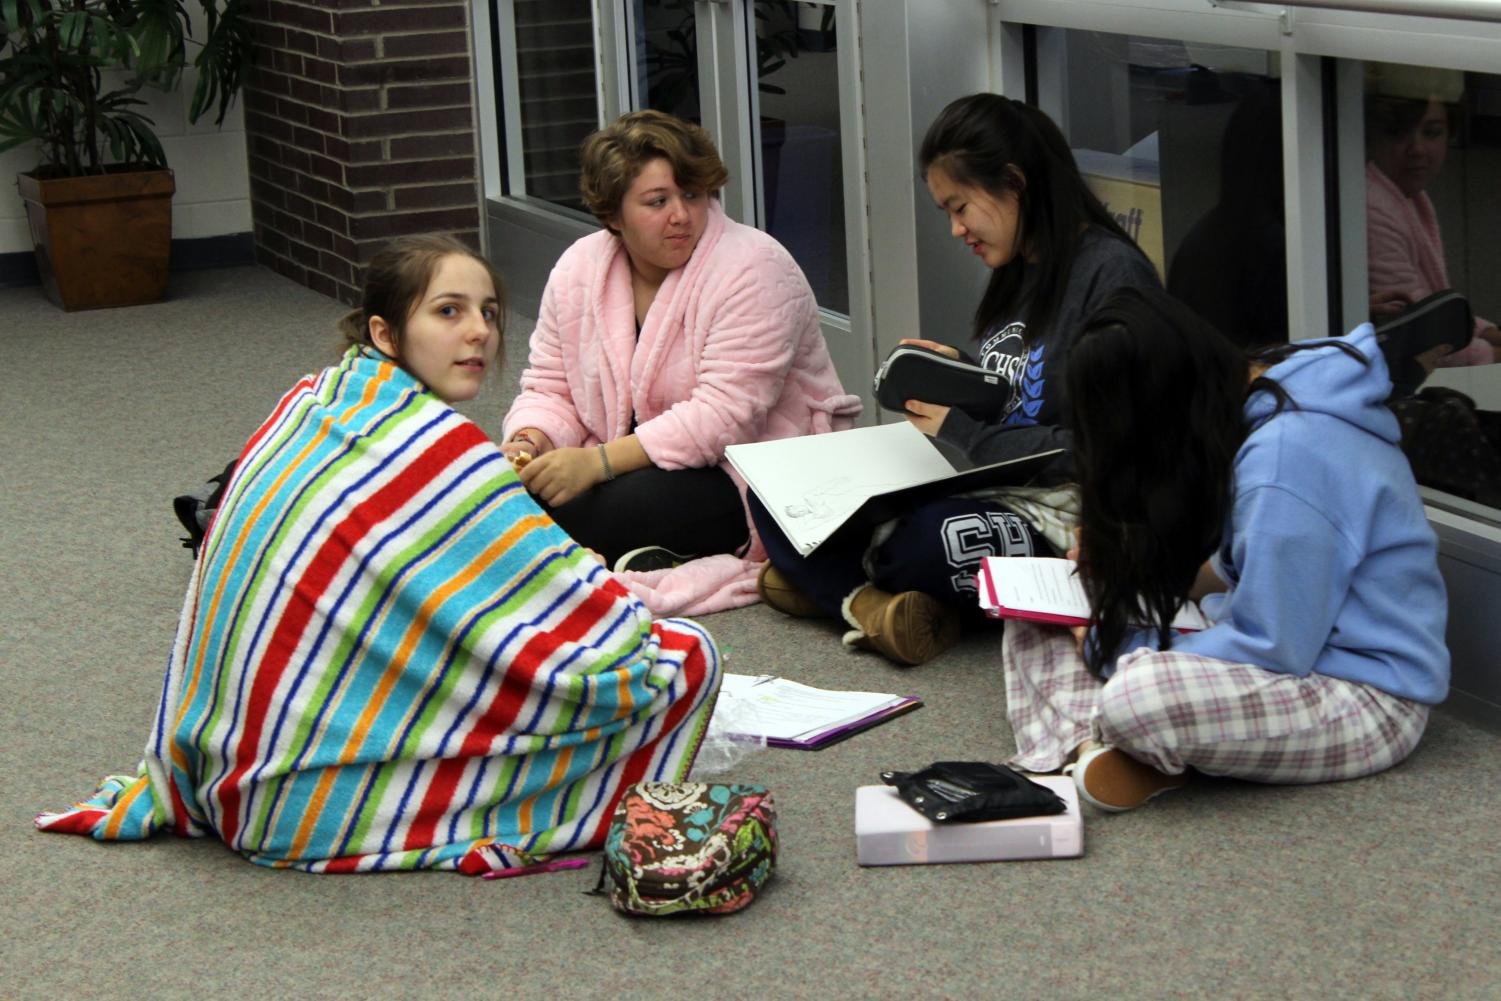 The+Spirit+Week+theme+on+Friday+was+Pajama+Day.+From+left%2C+juniors+Cecilia+Heidelberger+of+Middletown%2C+Merina+Spaltro+of+Allentown%2C+Caitlin+McLaughlin+of+Middletown+and+Angelina+Cheng+of+Marlboro+continue+their+daily+activities+during+lunch+except+dressed+in+robes%2C+slippers+and+blankets.